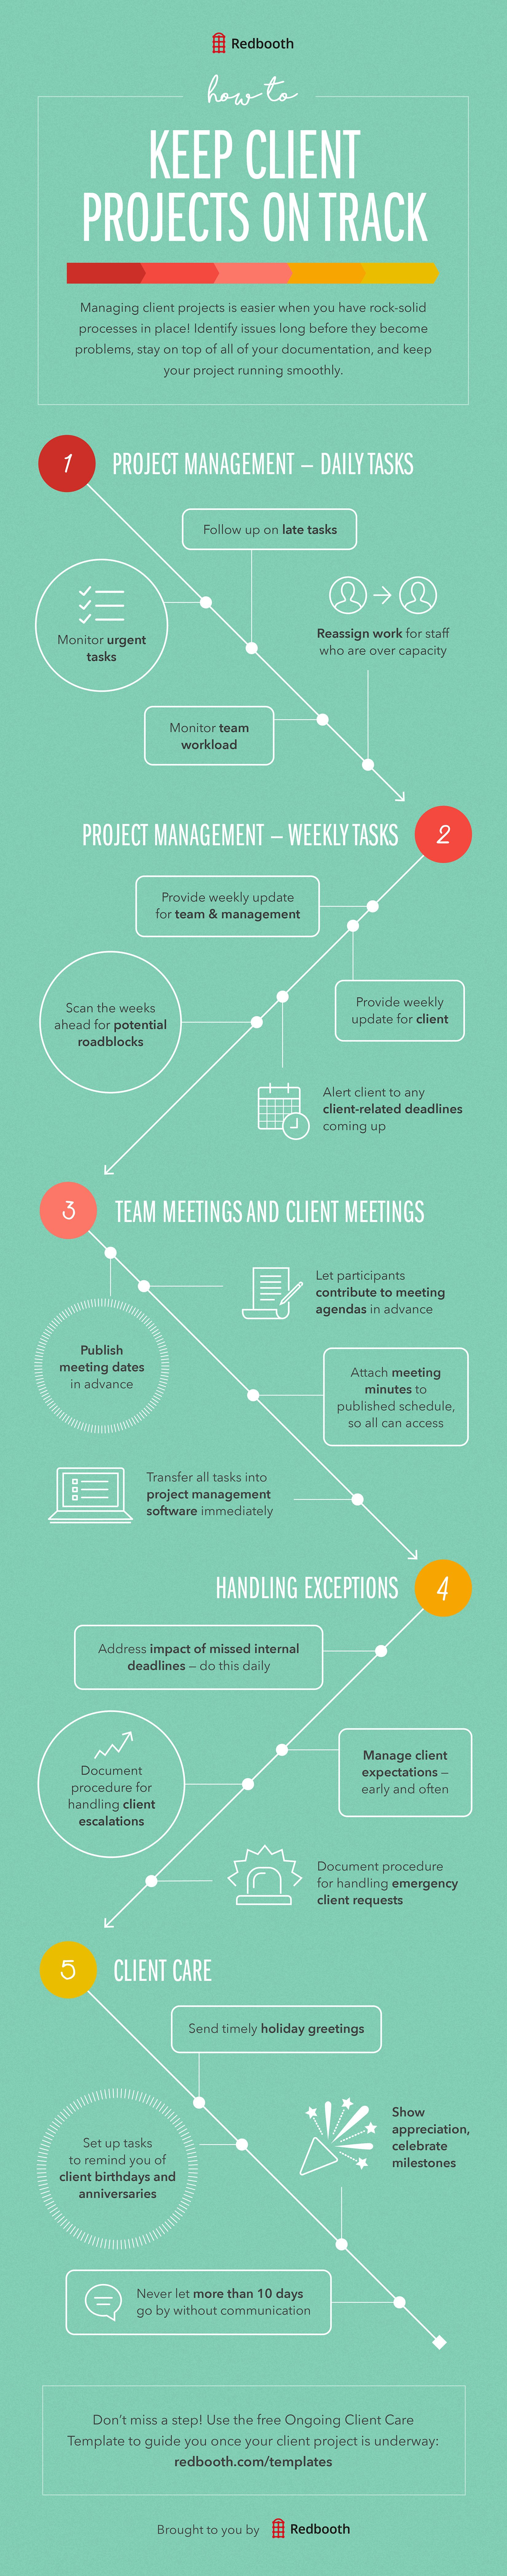 How to keep client projects on track #infographic #projectmanagement #agencies…